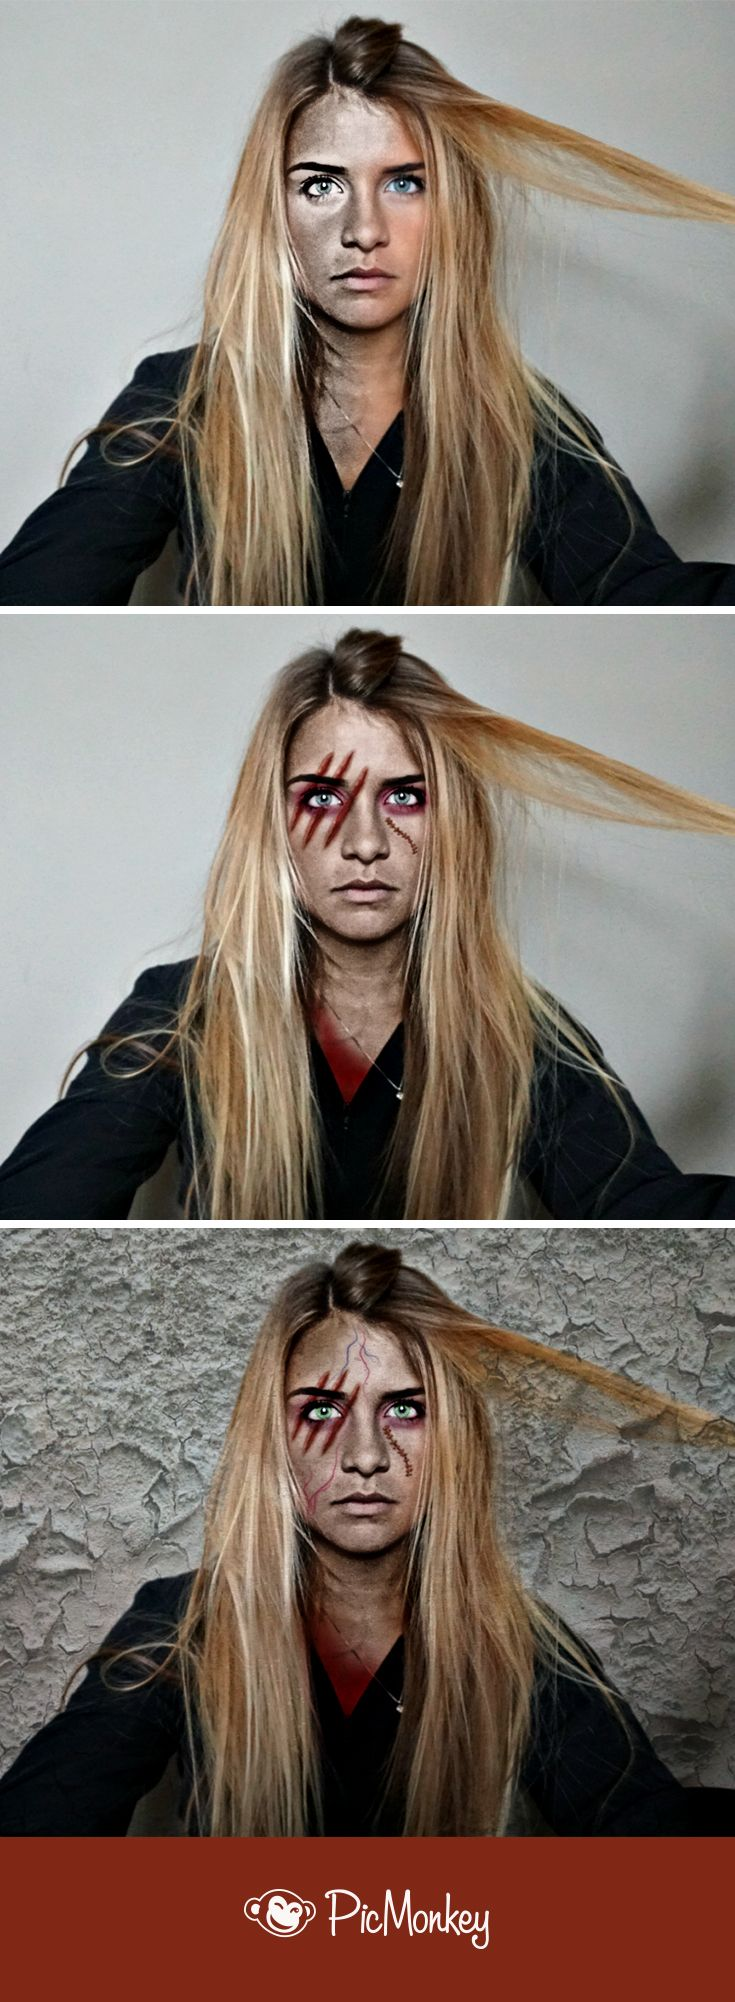 Get that dull, lifeless look and Zombify yourself with PicMonkey. You'll find gashes, slashes, evil eyes, bruises, and deadend skin. Perfect for zombifying.